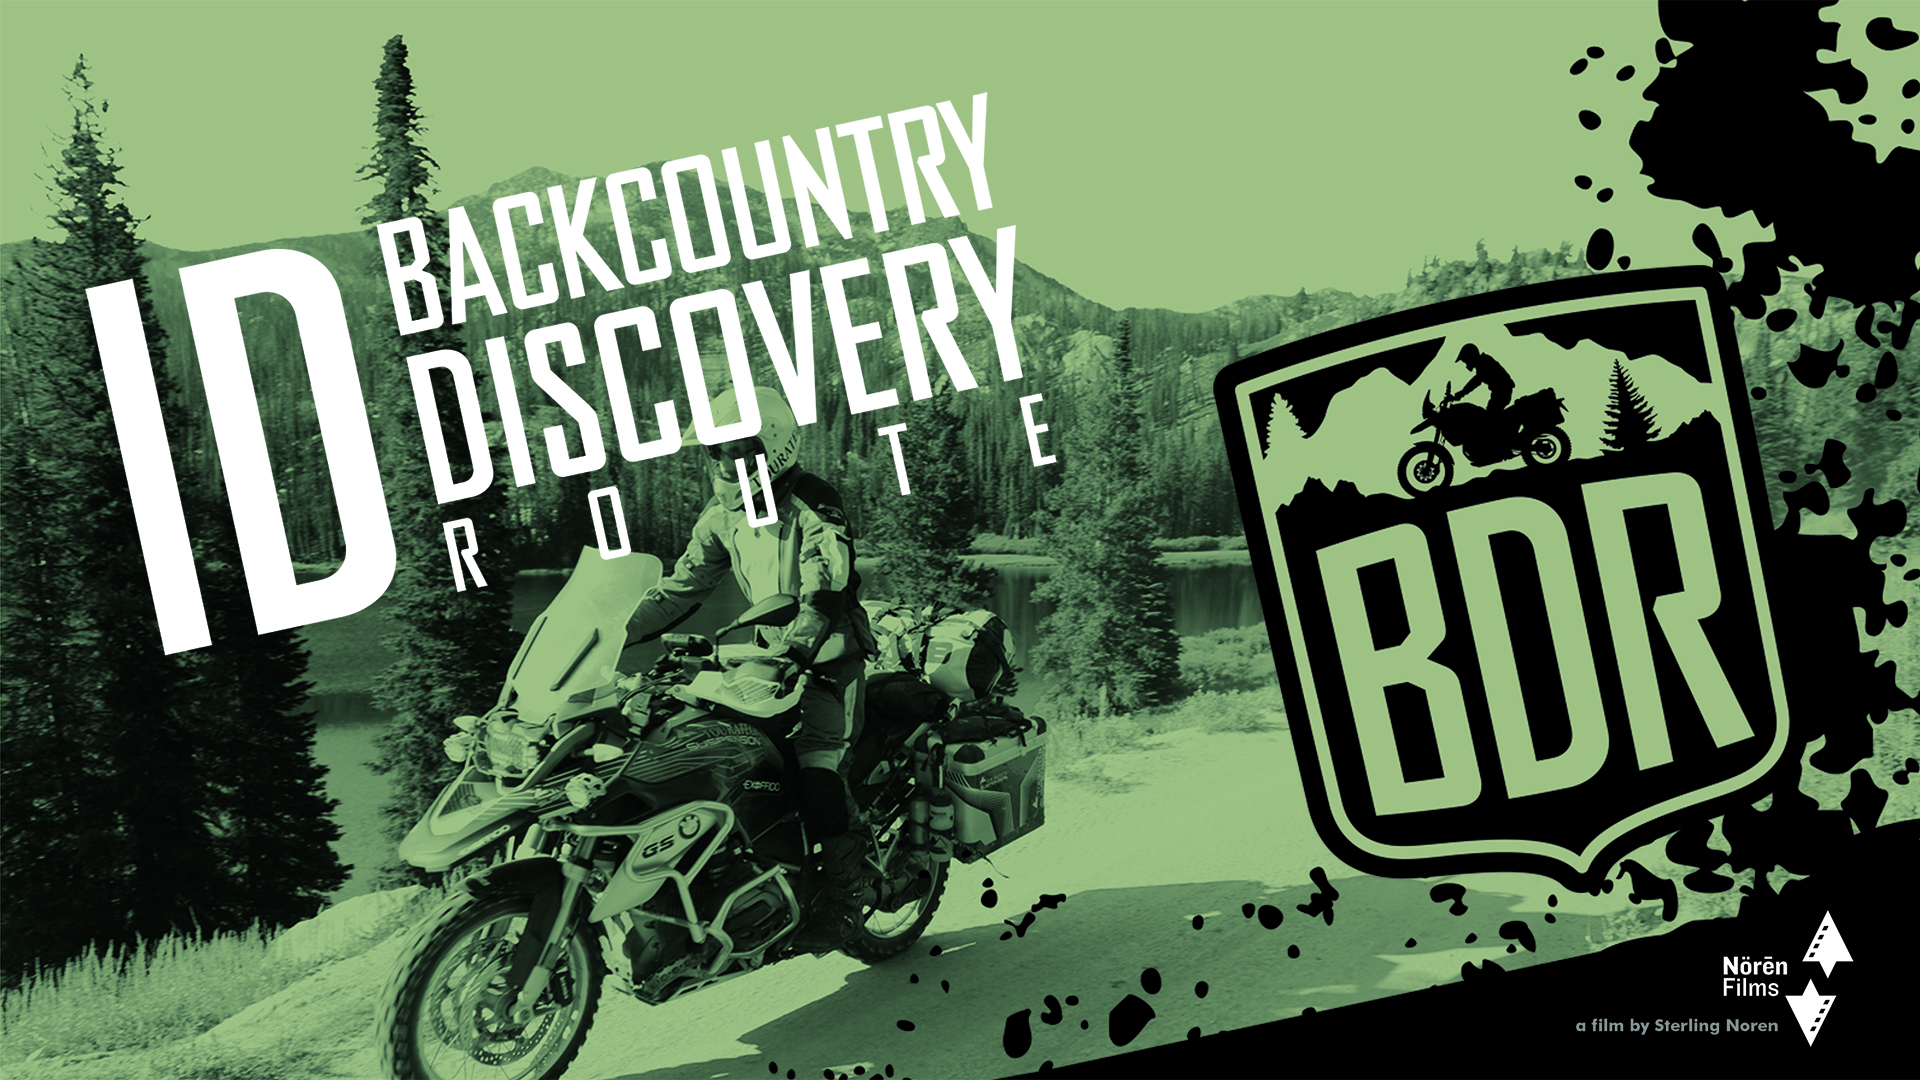 ID Backcountry Discovery Route